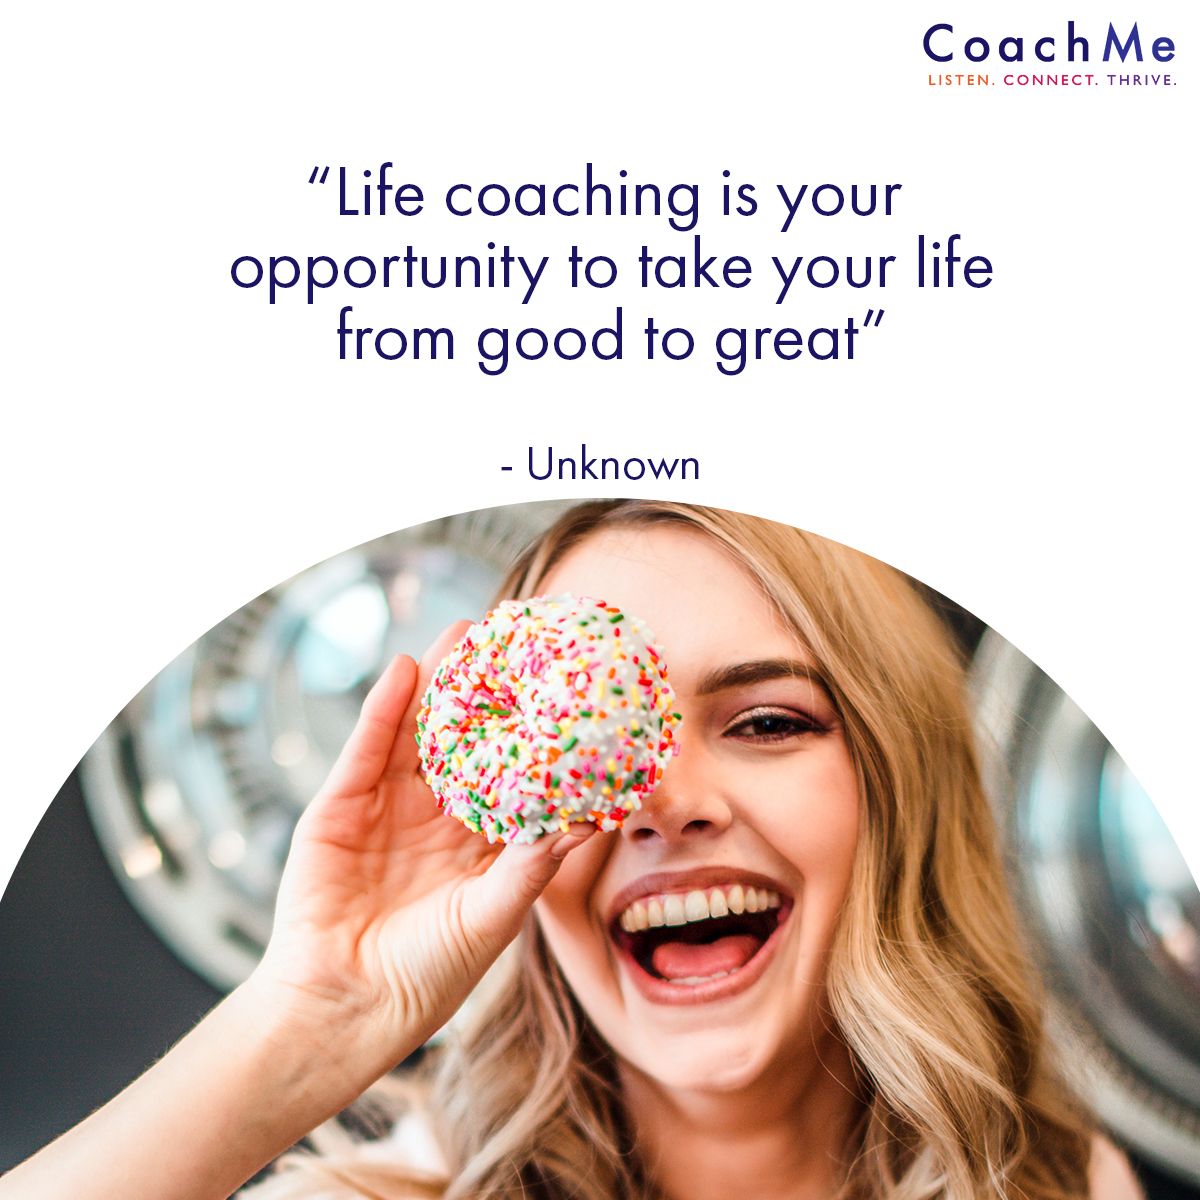 Coaching Quotes - Coaching Network - Coaching Words - CoachMe Vancouver